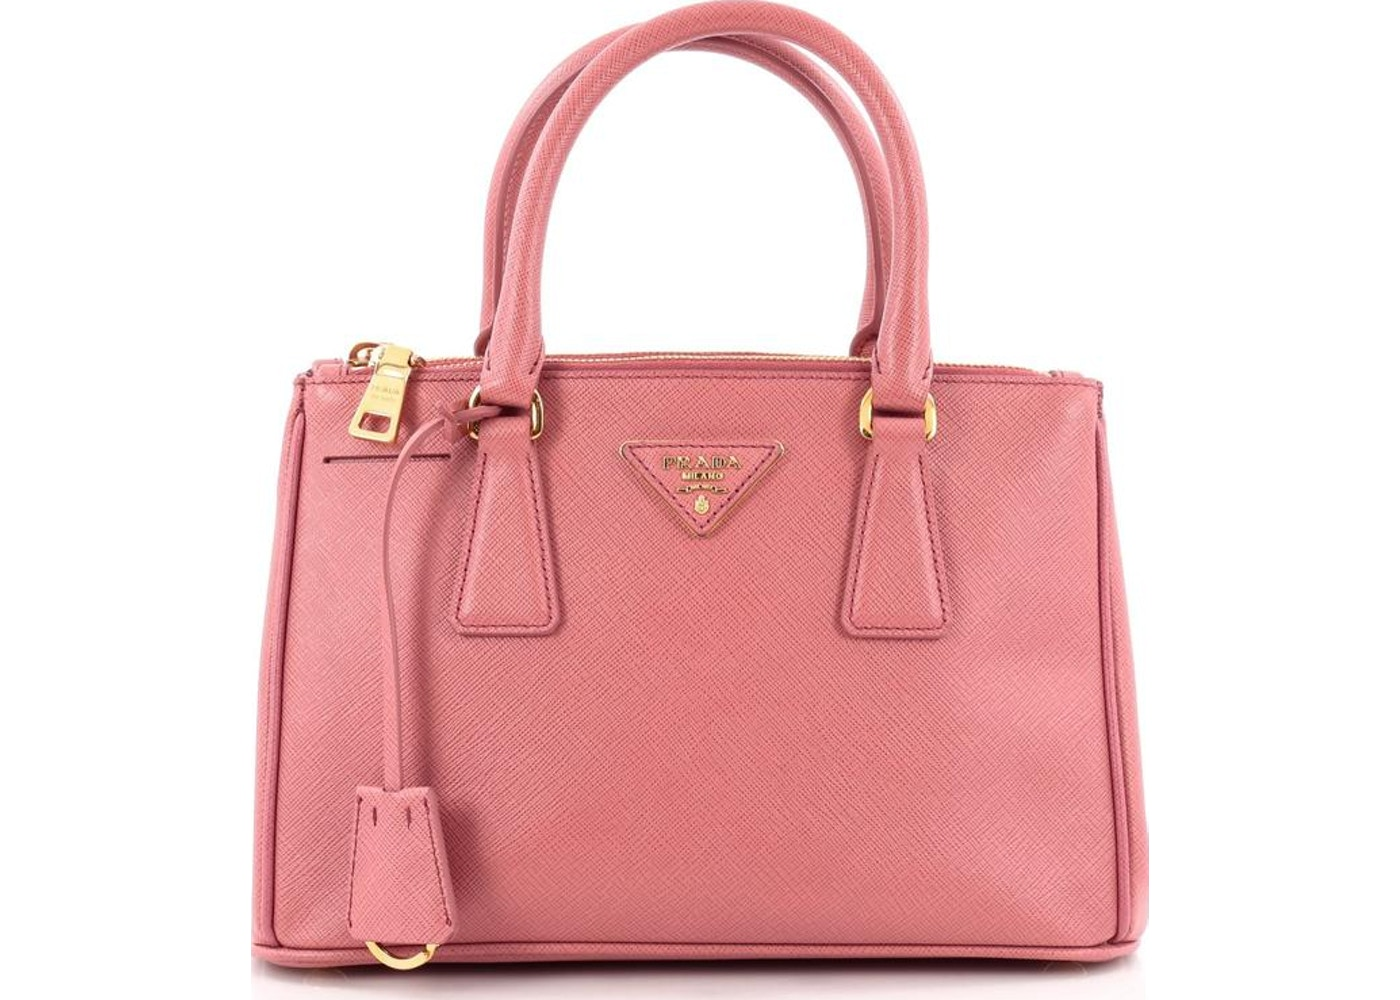 43afd735bb8d Buy & Sell Prada Handbags - Total Sold